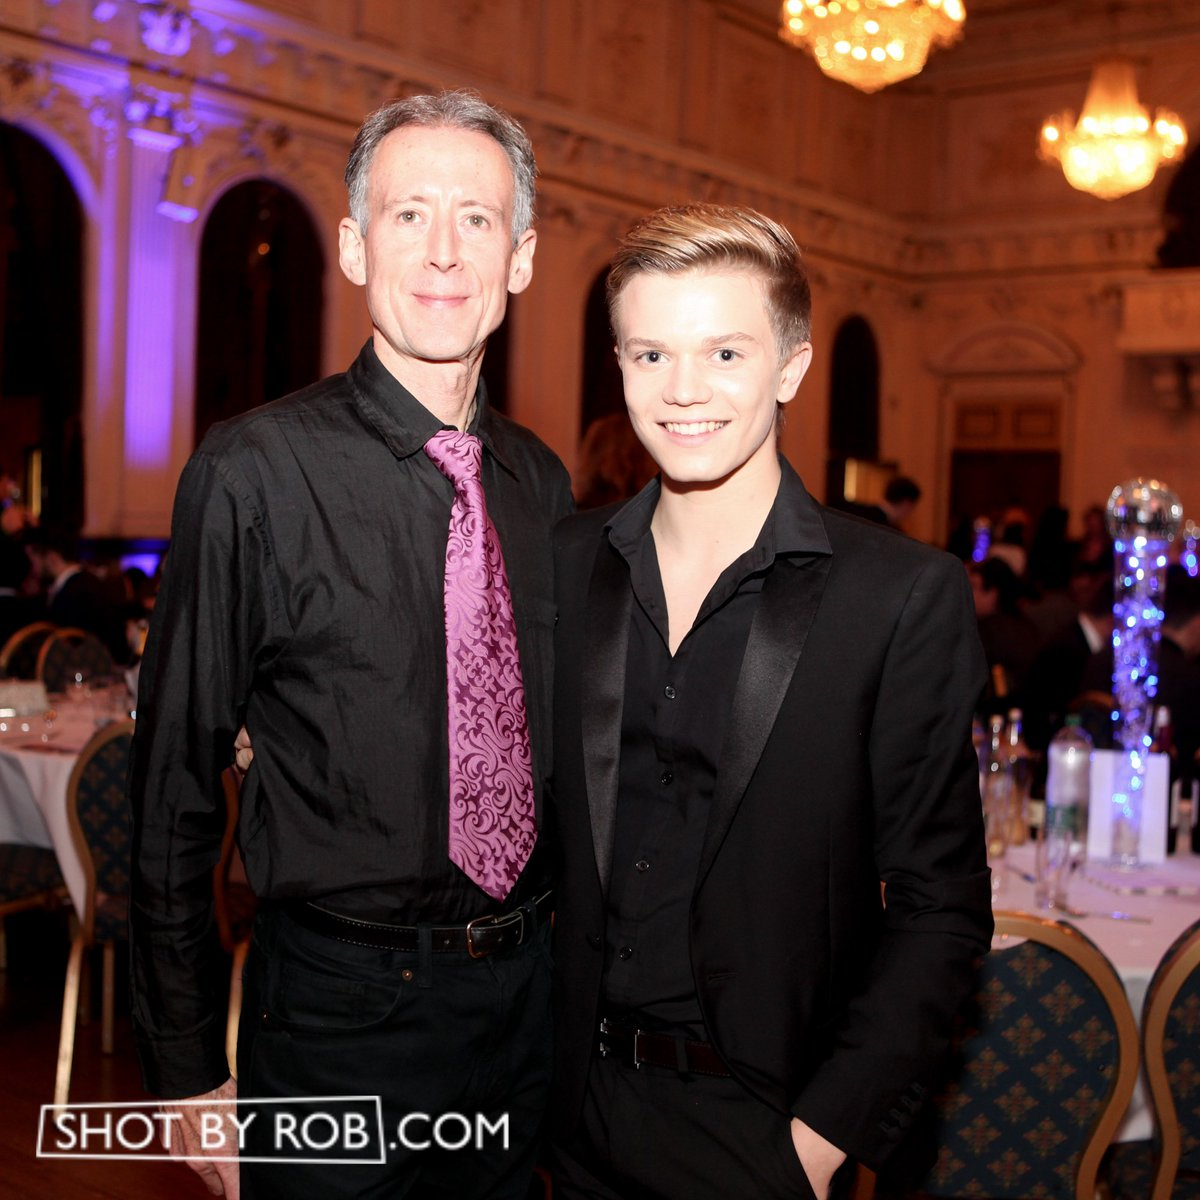 @RonanParke at @PT_Foundation #EqualityBall2015 @PeterTatchell. View the photos at https://t.co/BvyCqX2ab1 https://t.co/x5fb8r6CNV